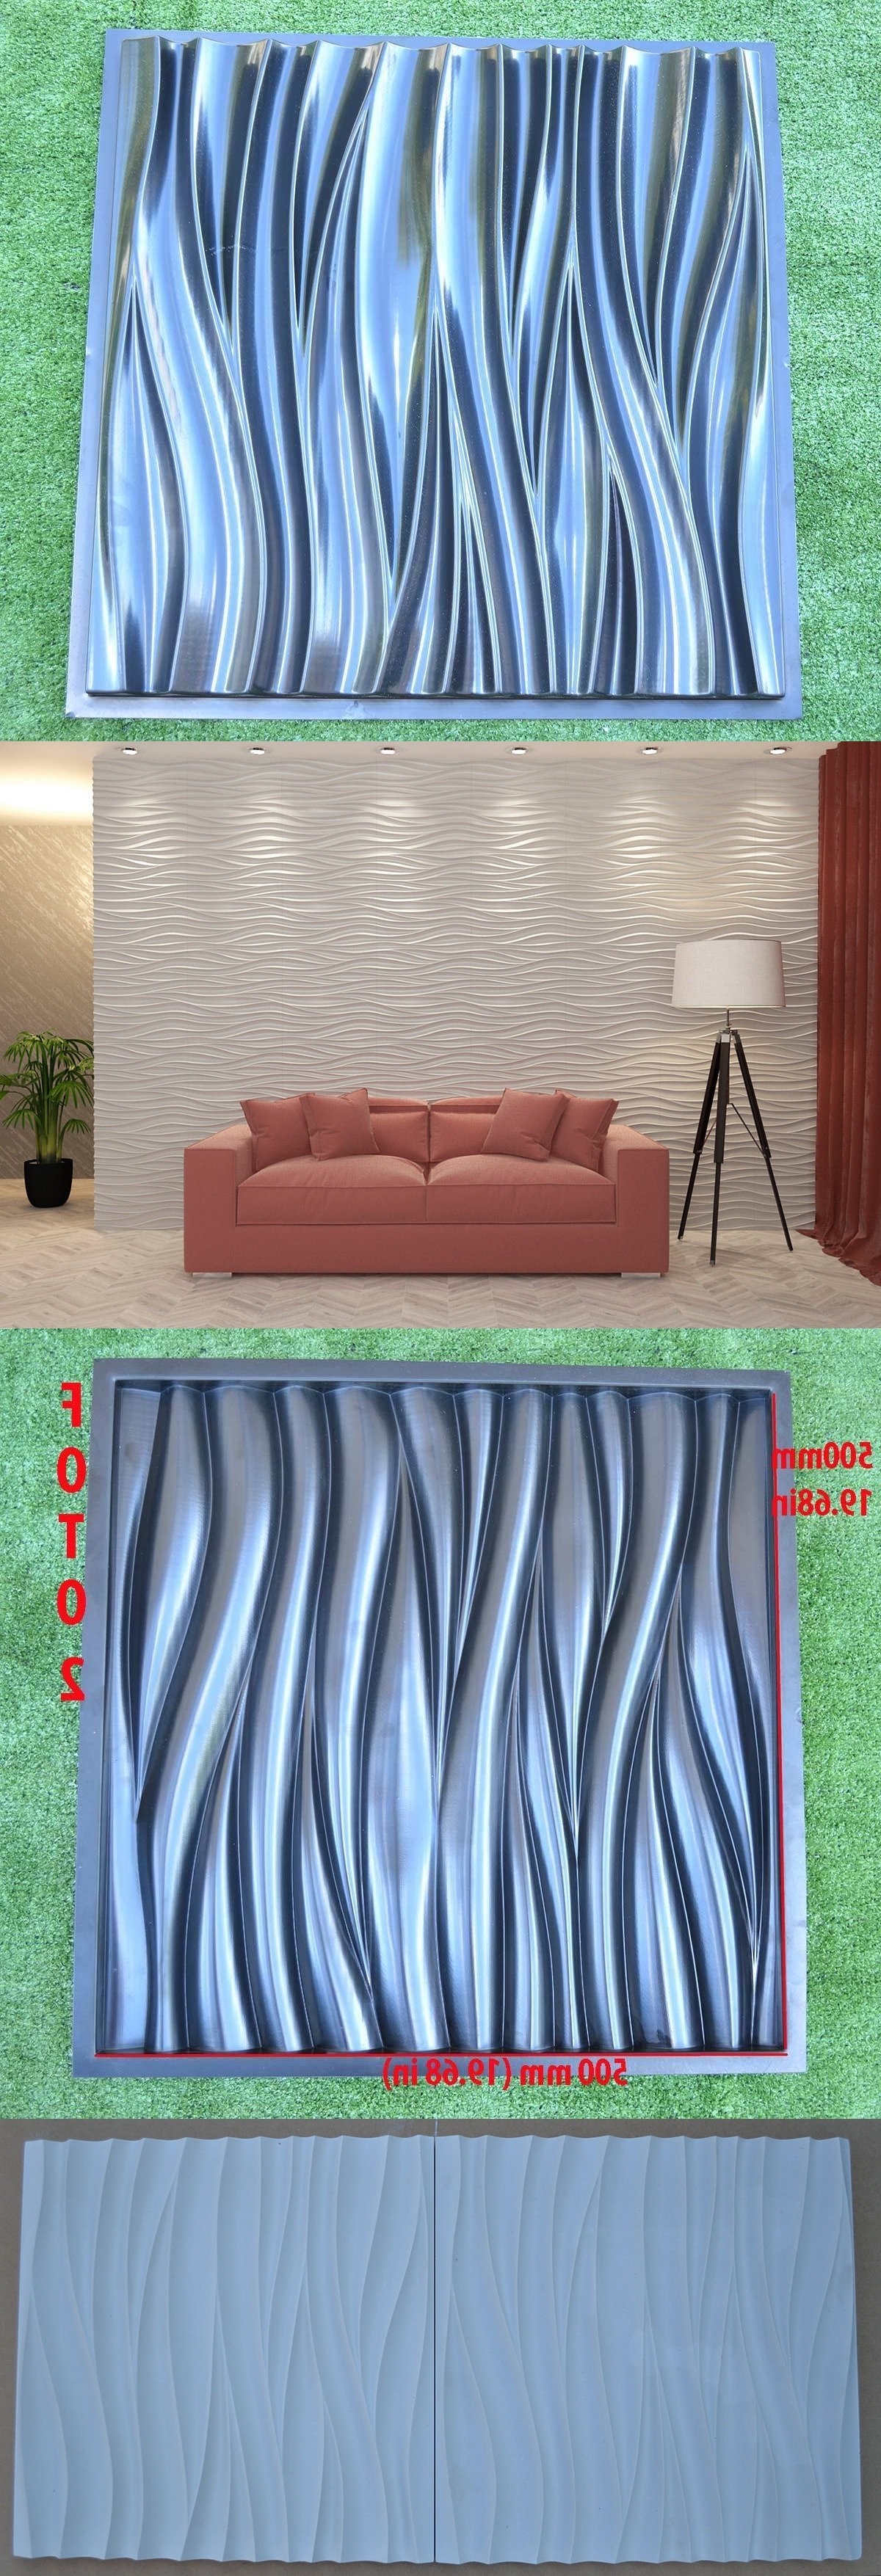 Waves 3D Wall Art Pertaining To 2017 Slip Casting Molds And Kits 83898: Wave 3D Wall Panel Mold Plaster (View 15 of 15)